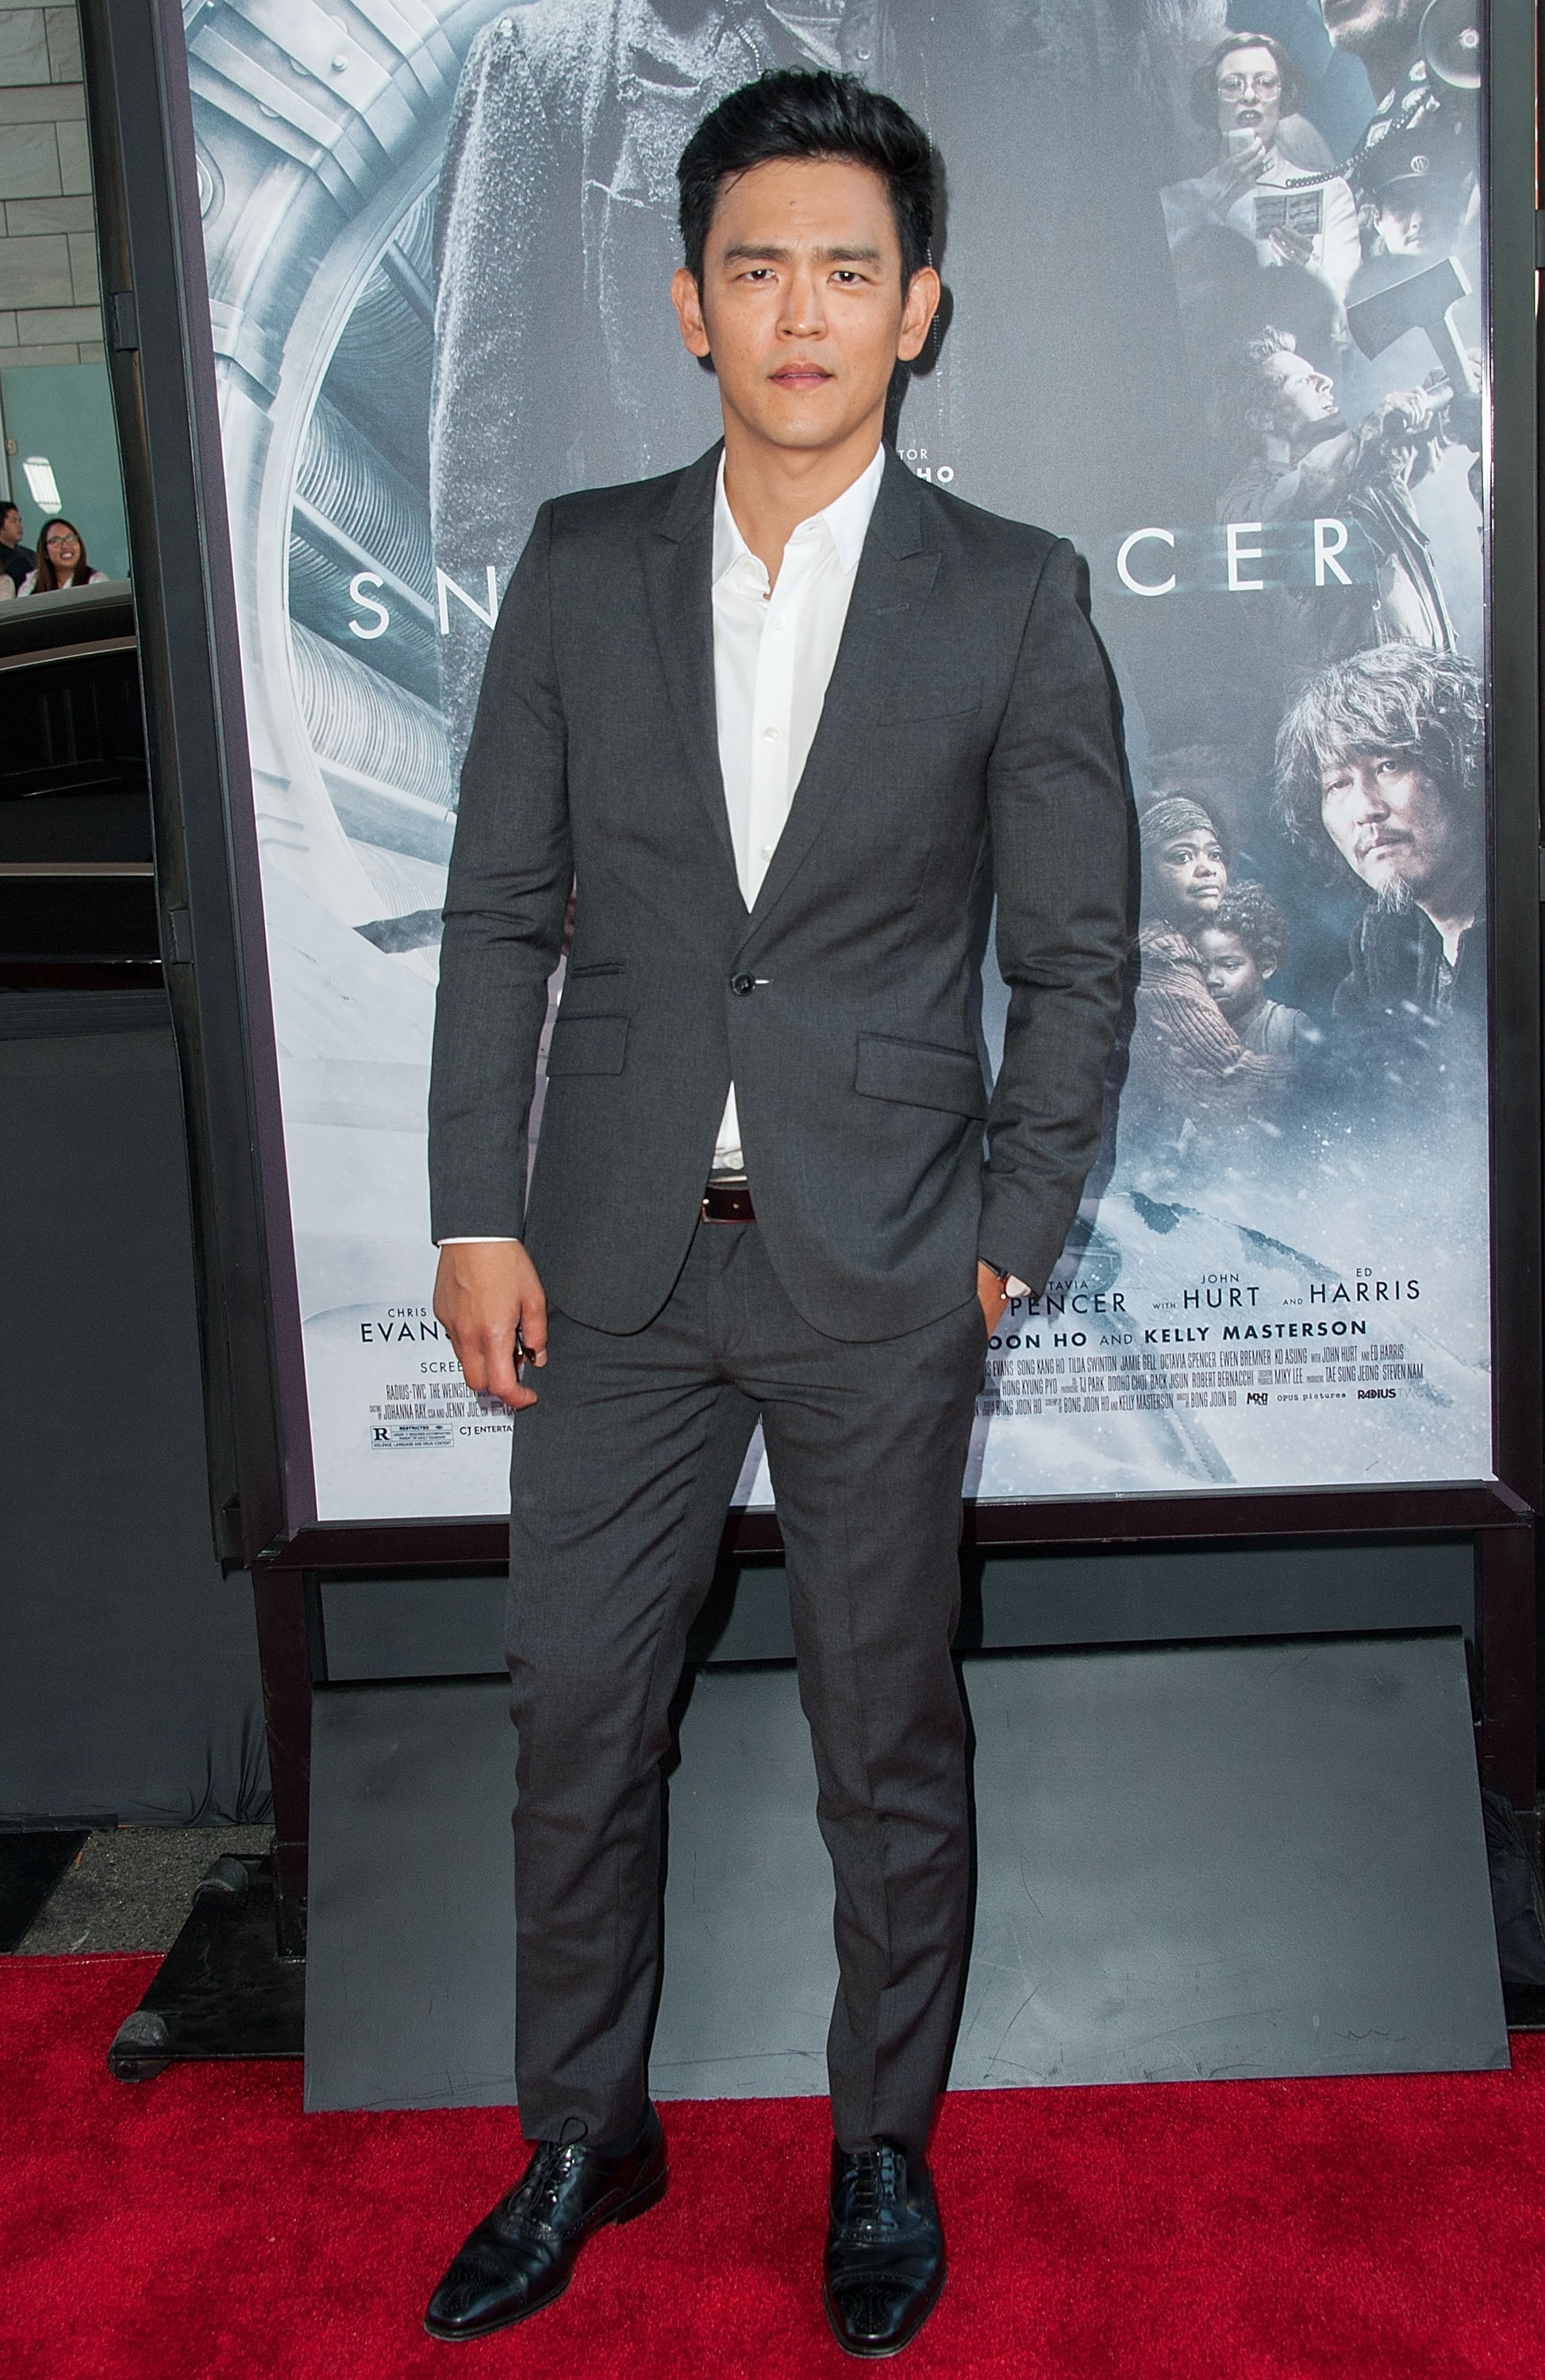 John Cho suited up for the Snowpiercer premiere.